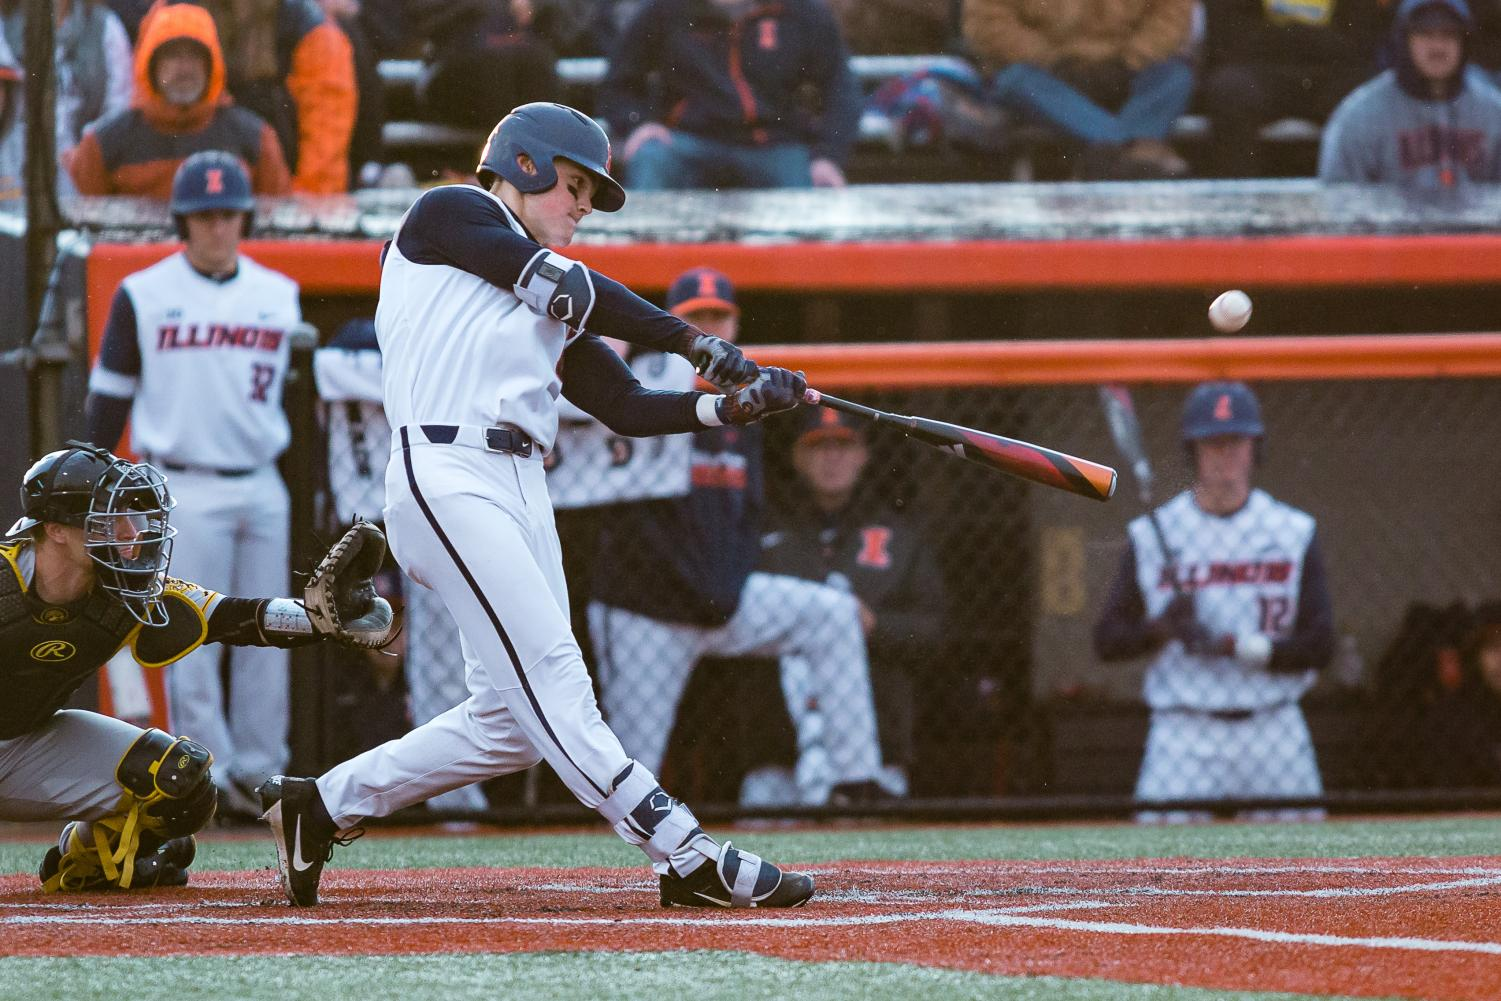 Illinois infielder Michael Massey takes a swing at the ball in the Illini's Big Ten home opener against Iowa on March 30.